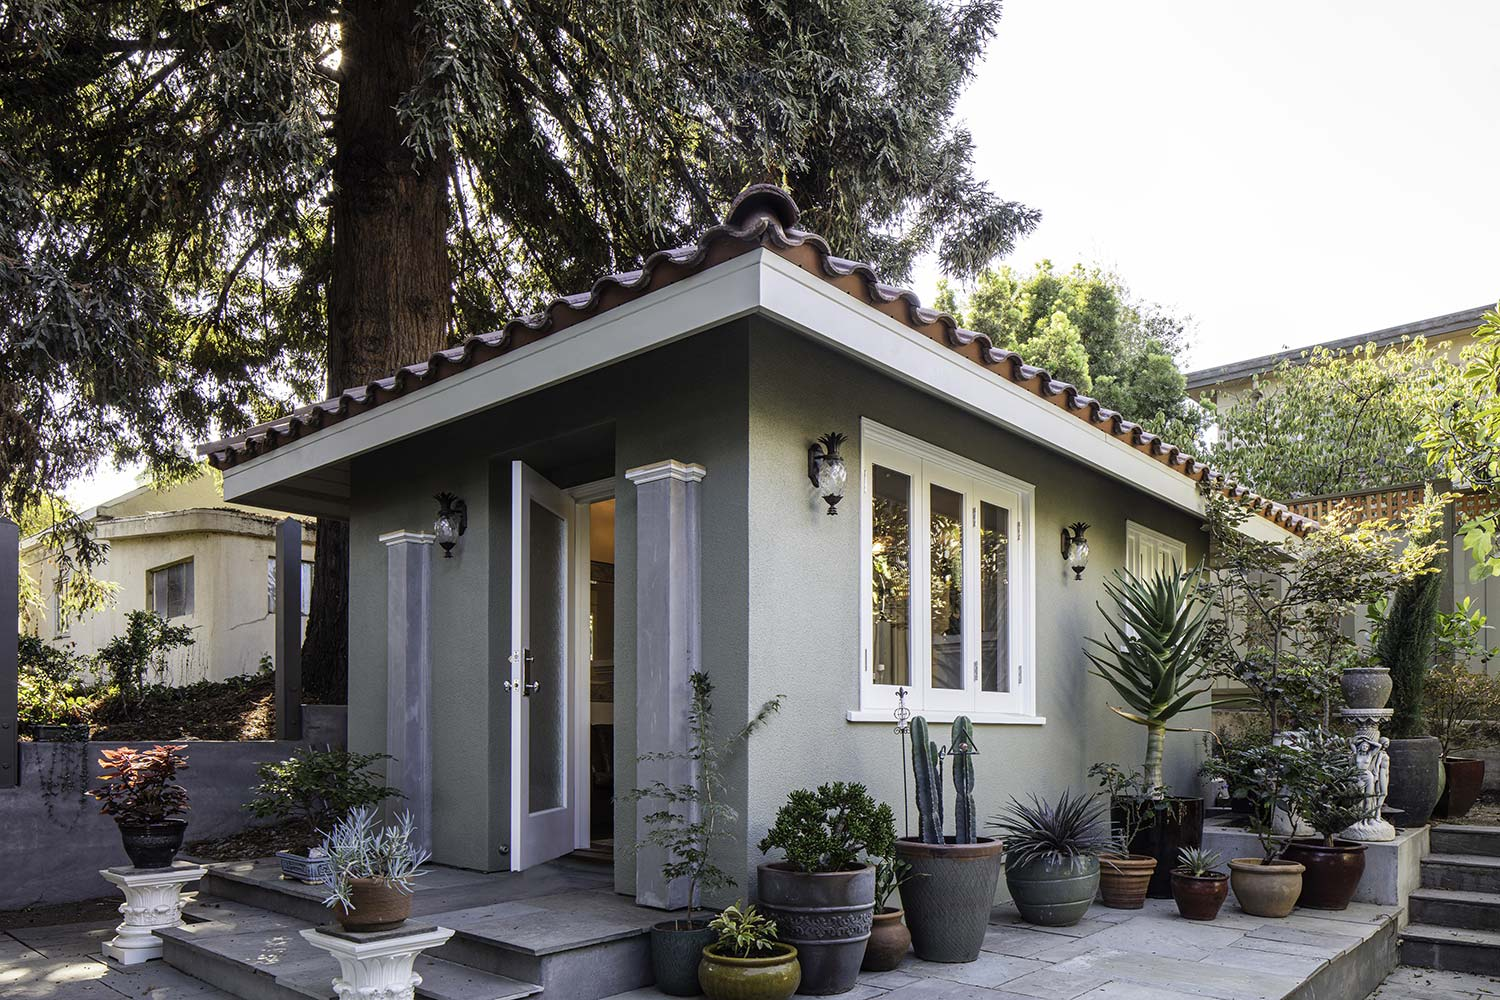 Shelter in Place with Accessory Dwelling Units